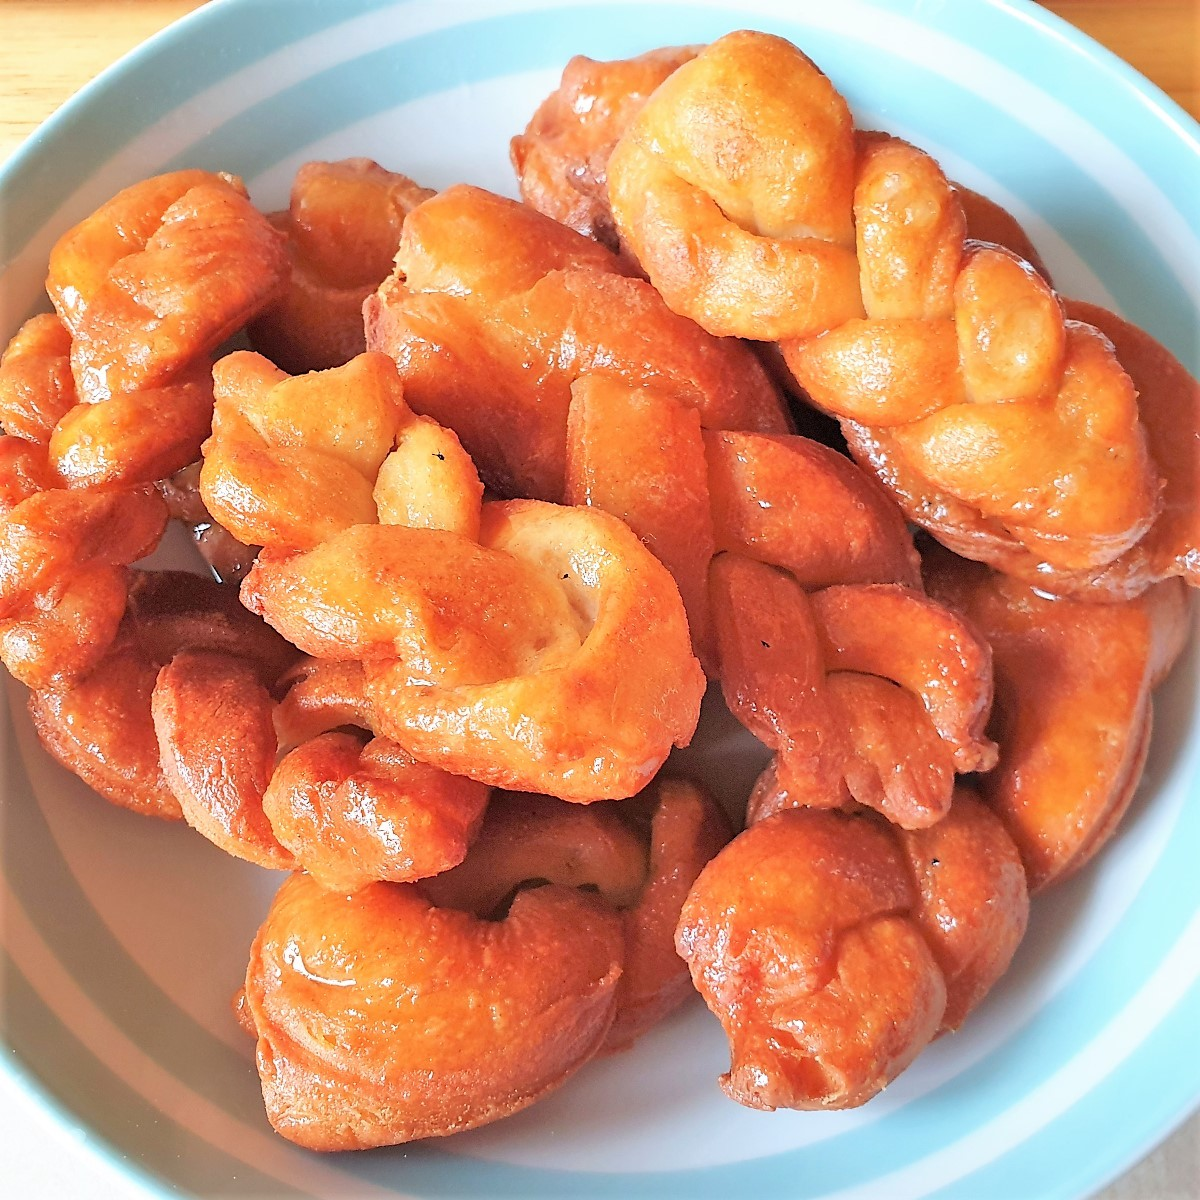 A dish of koeksisters.